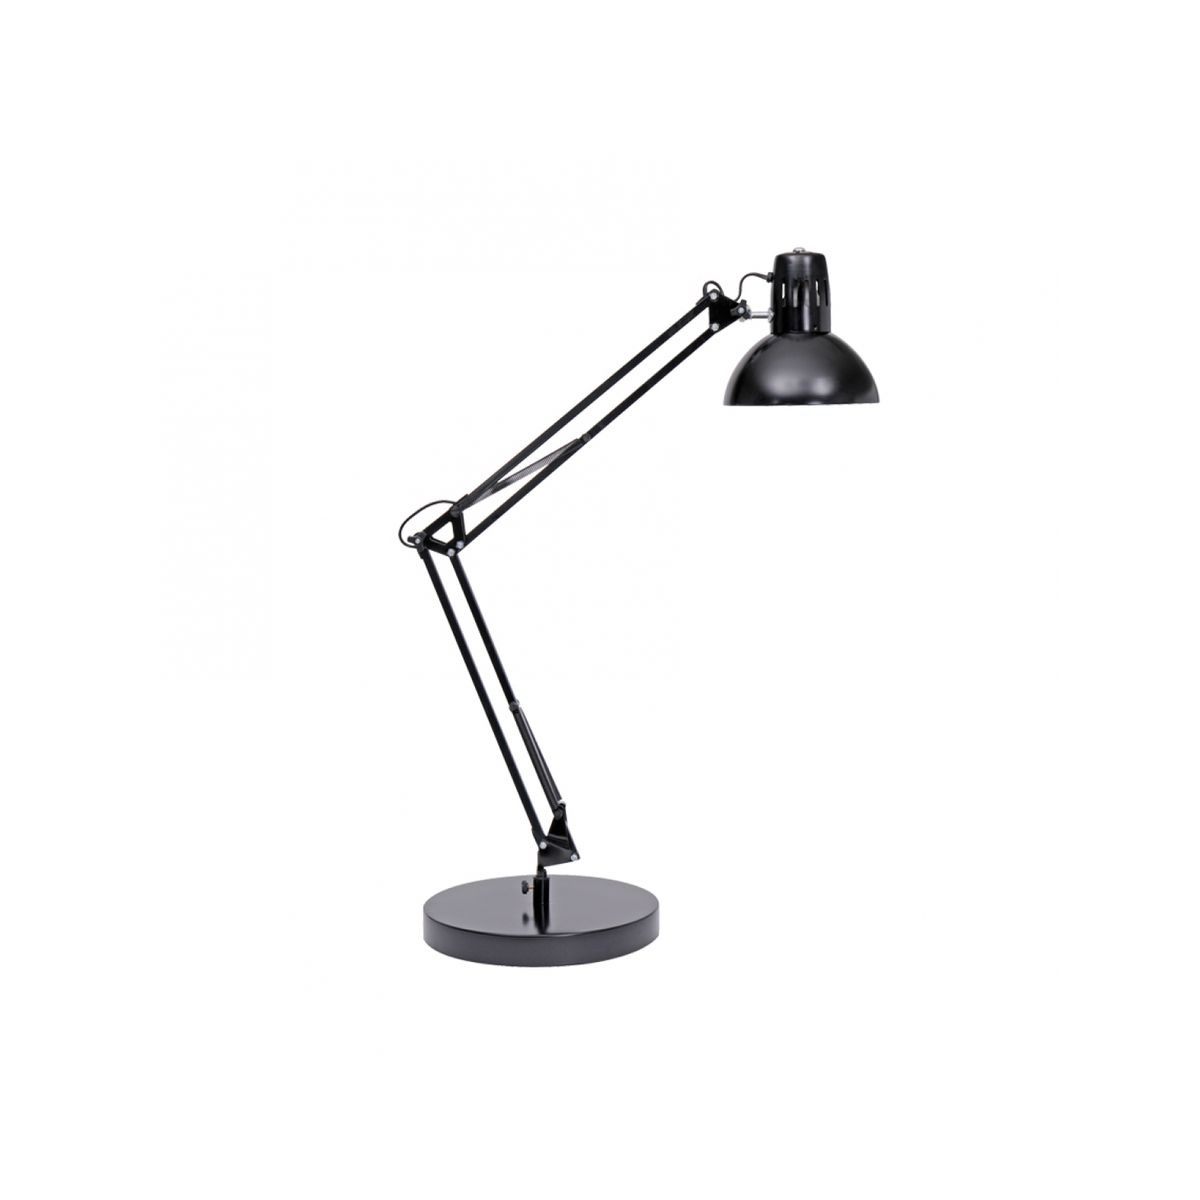 Lampe architecte affordable lampes de bureau ikea lampes for Lampe bureau architecte